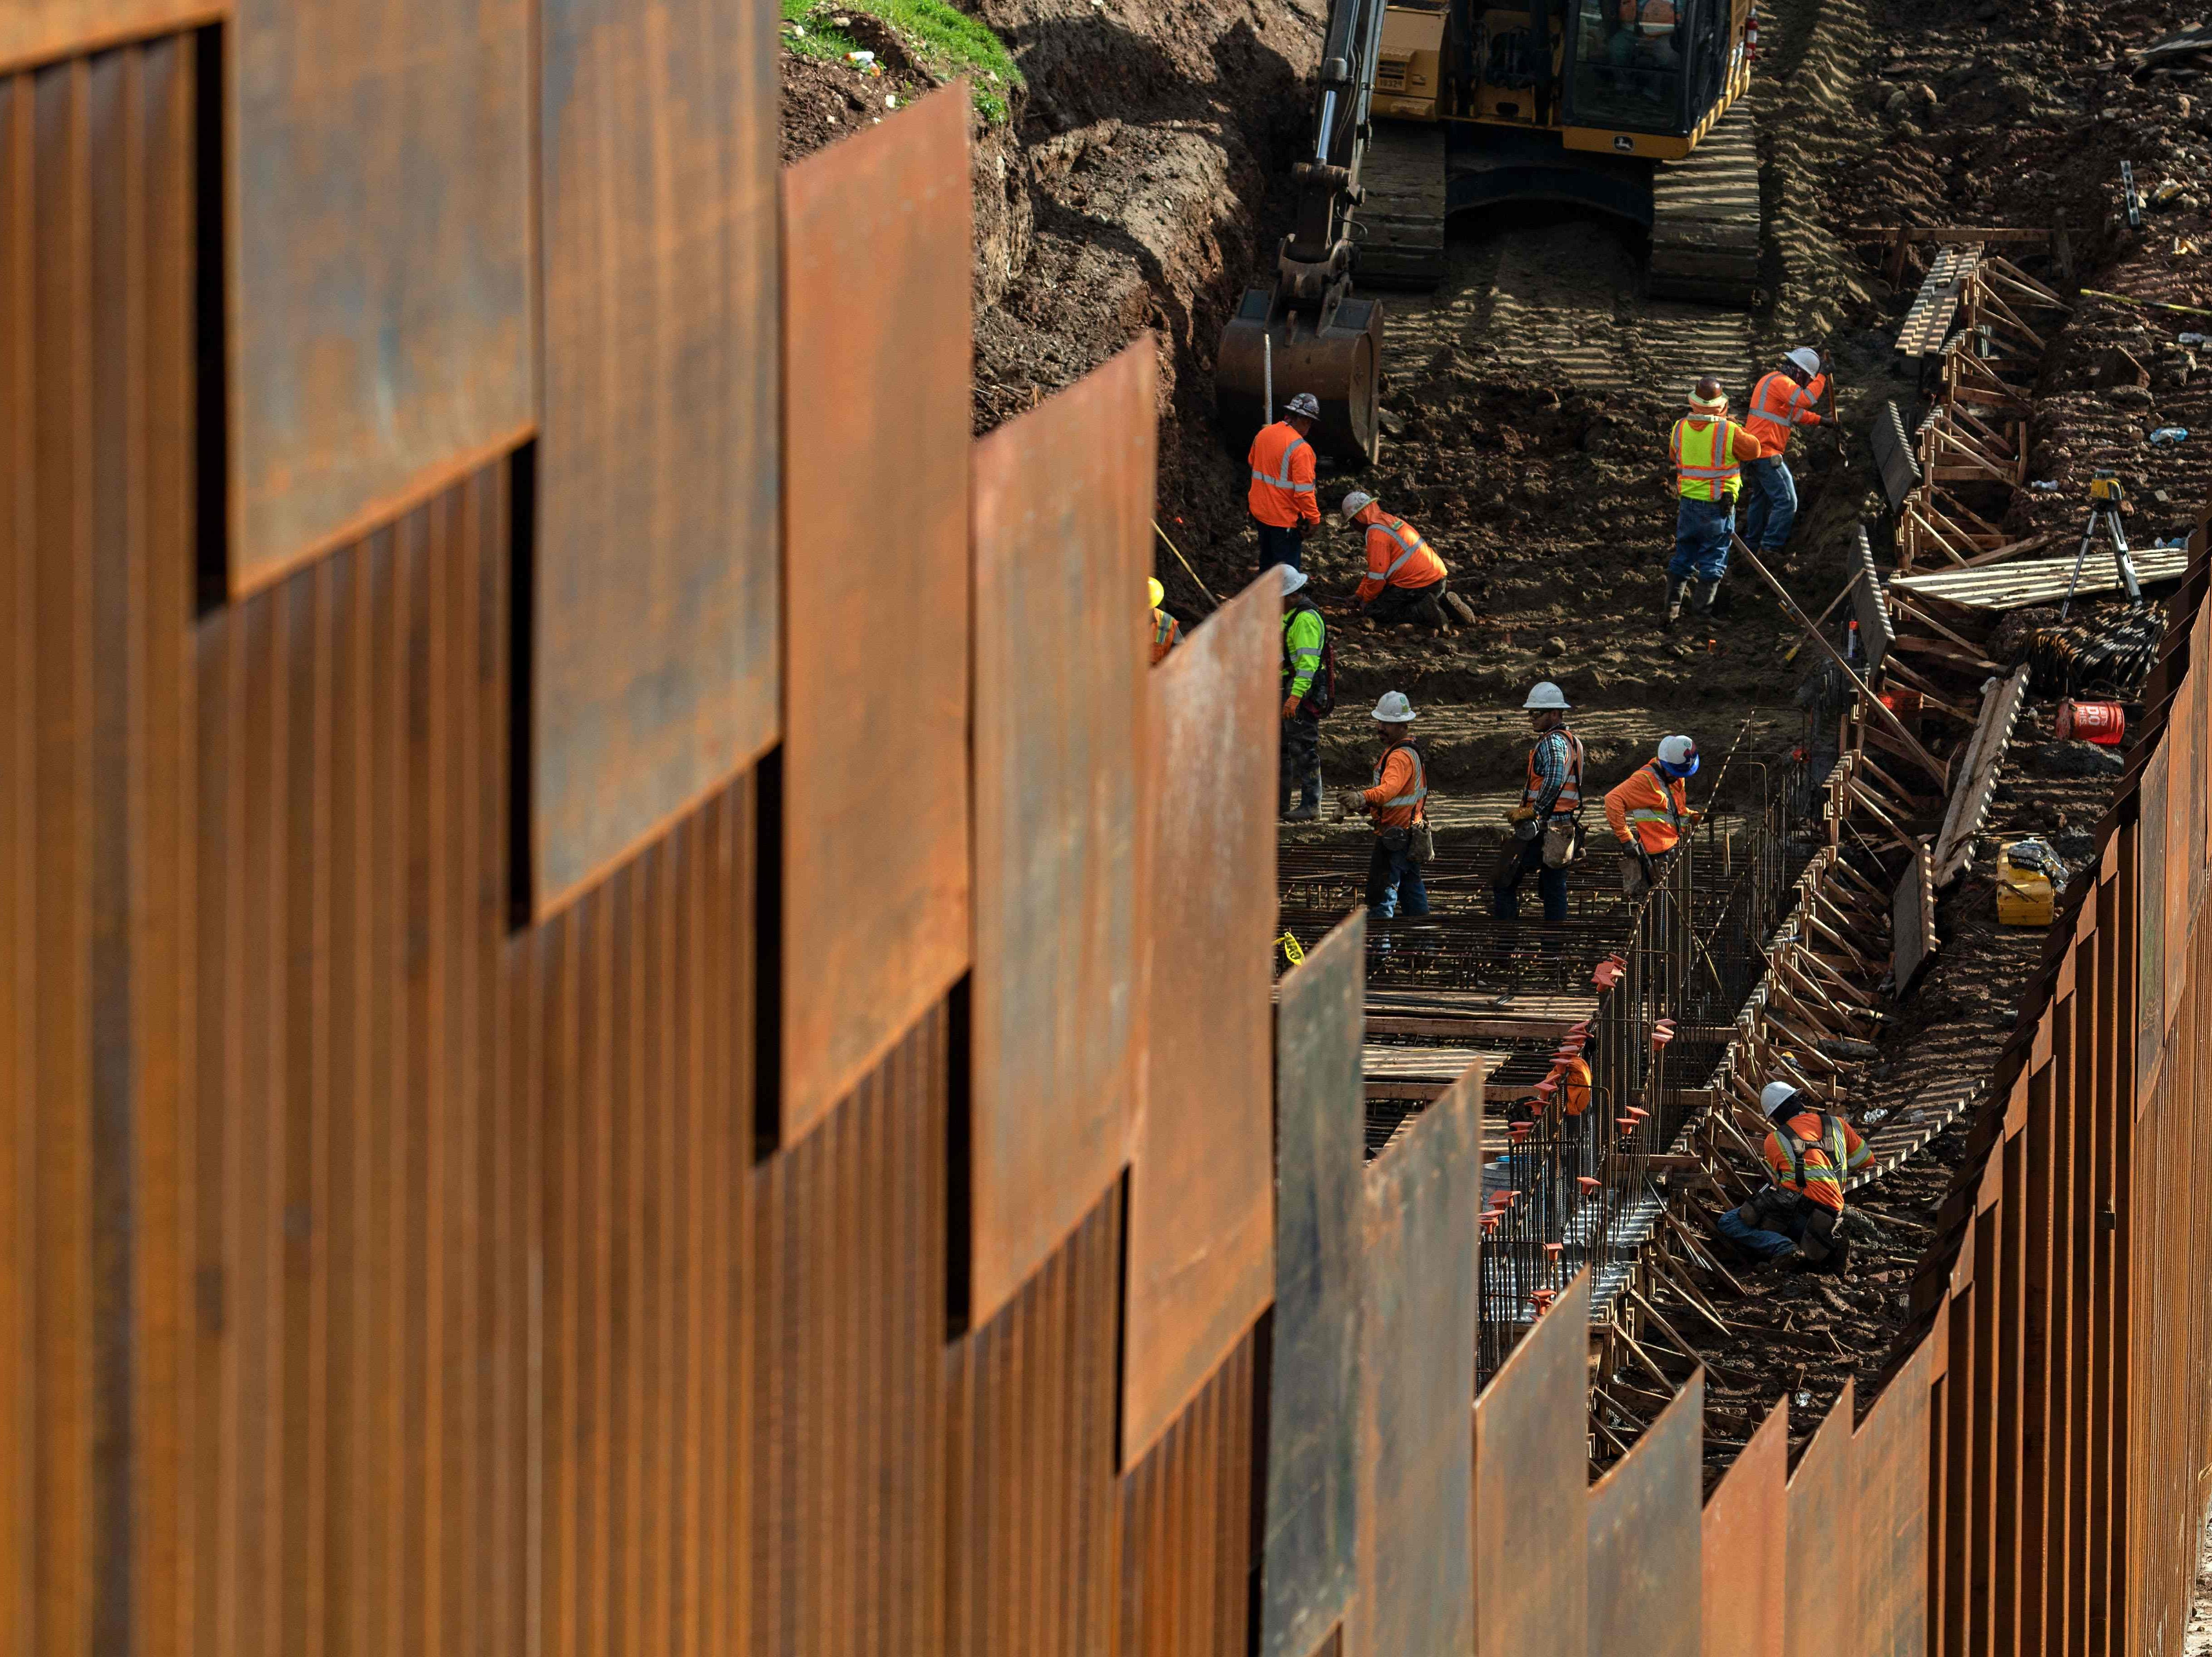 Workers reinforce a section of the US-Mexico border fence, as seen from eastern Tijuana, in Baja California state, Mexico, on Jan. 18, 2019.